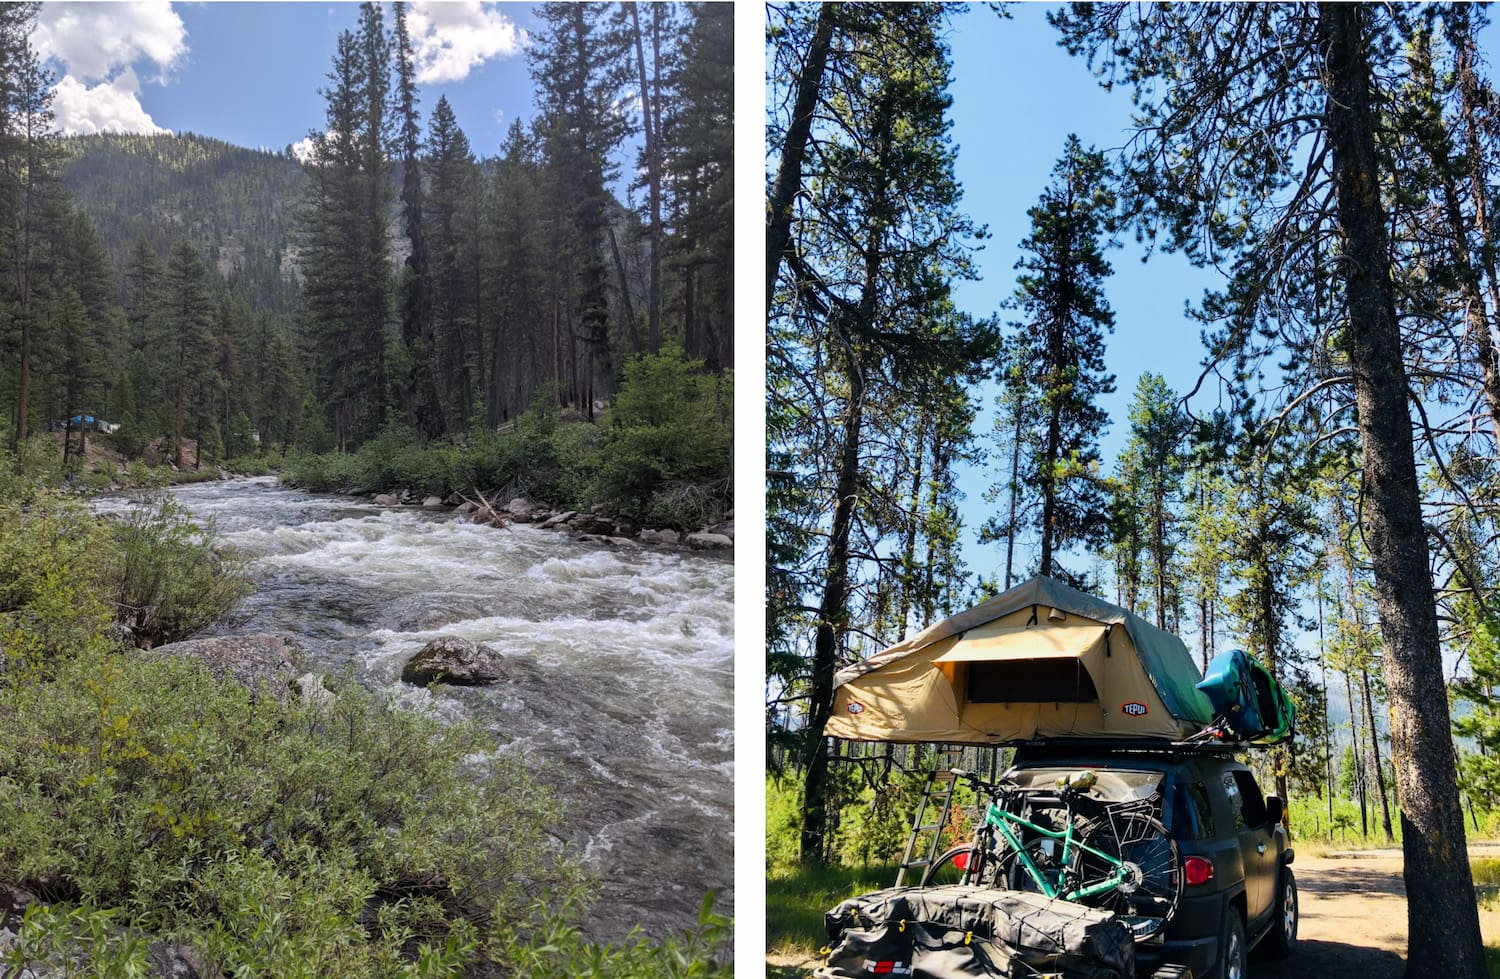 side by side images of river and rooftop tent